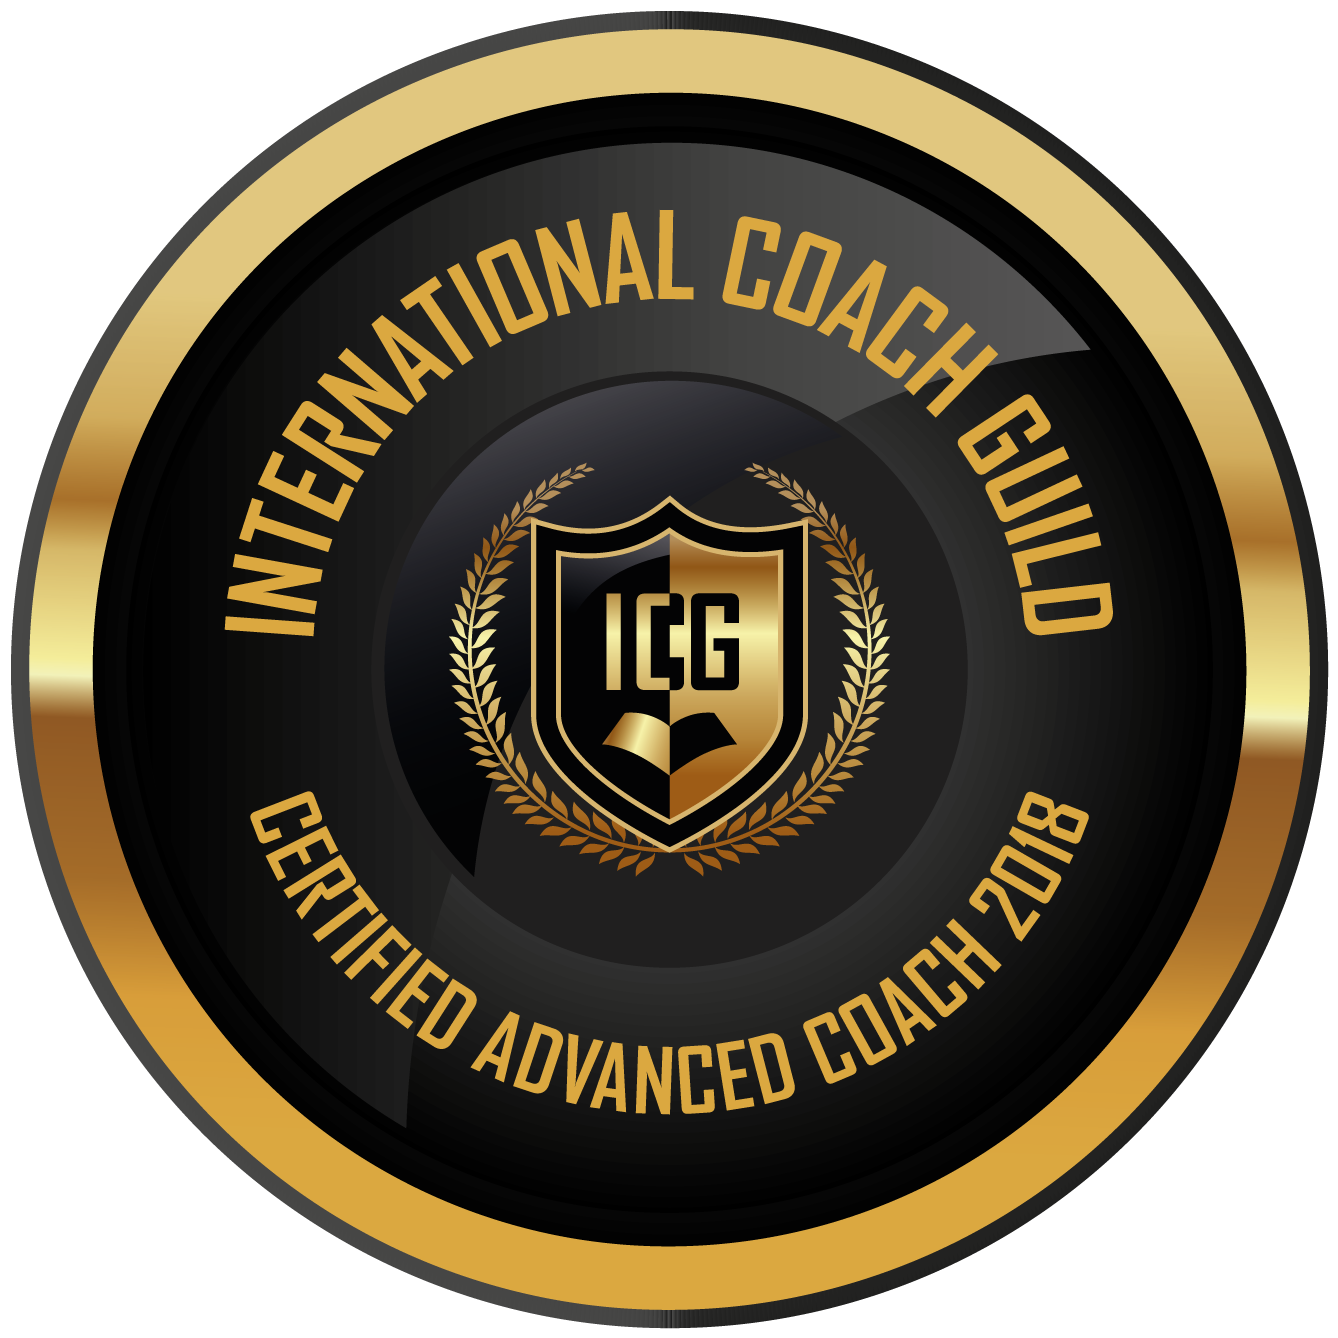 ICG Certified Advanced Coach 2018 Members Badge High Resolution